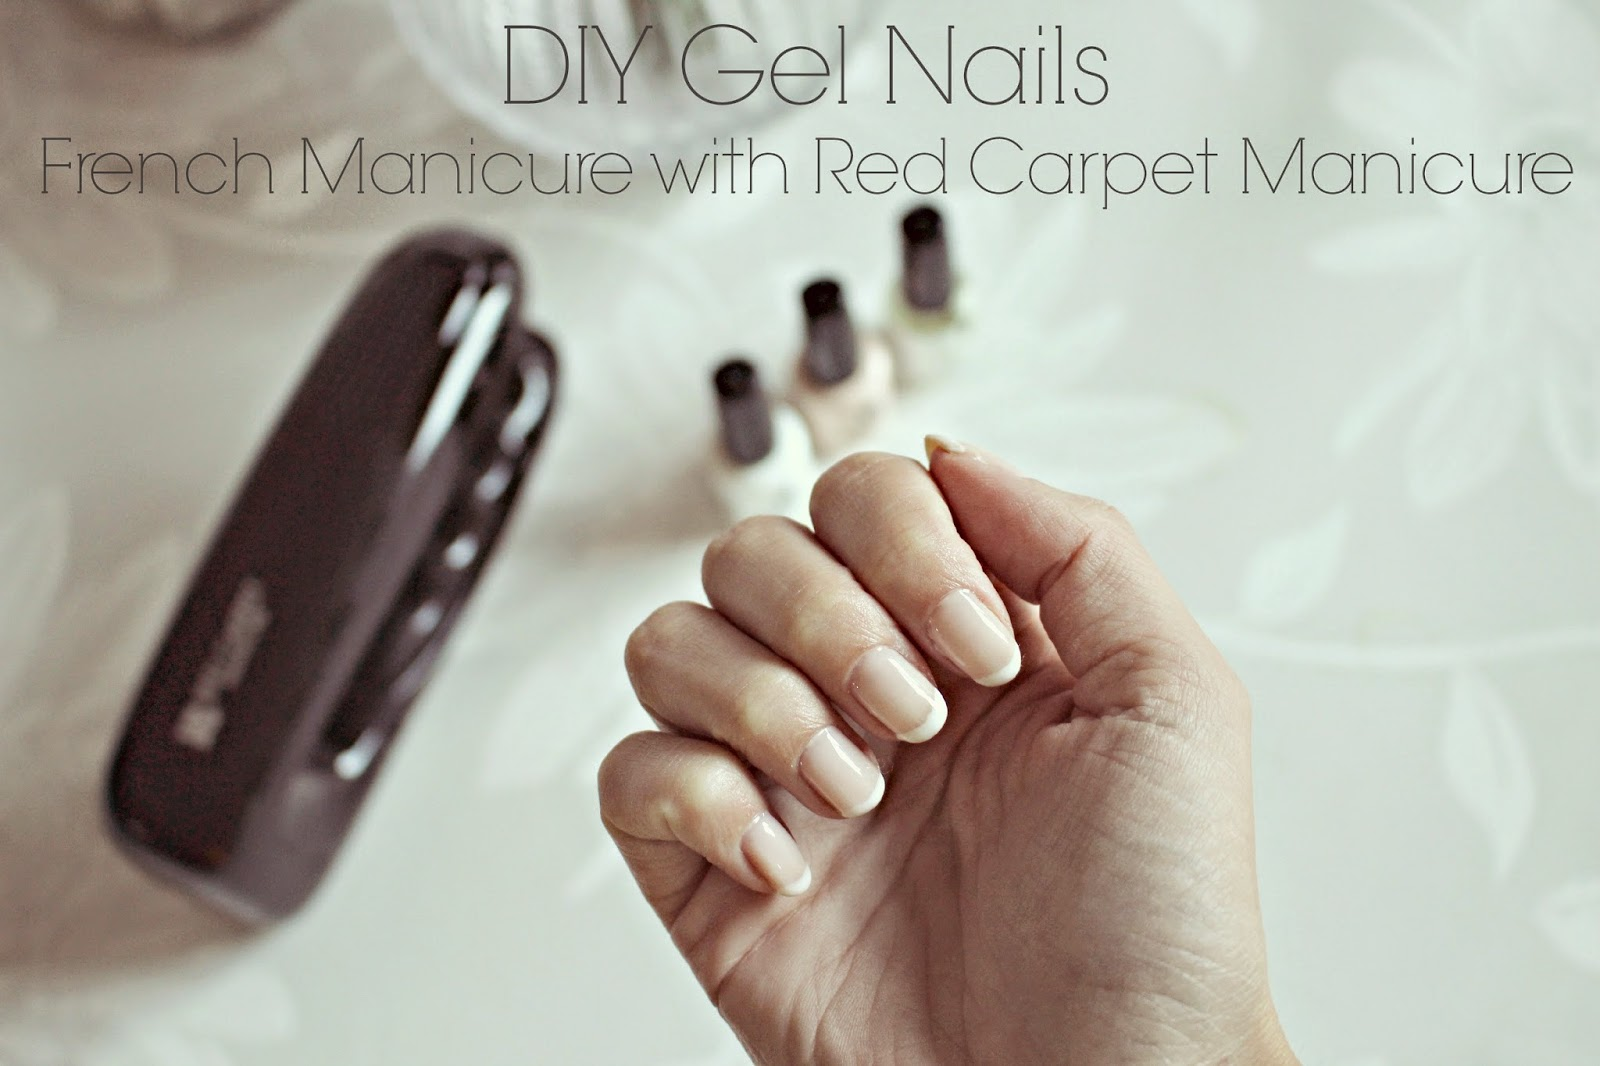 French manicure gel nails at home diy french manicure gel nails tutorial fashion mumblr solutioingenieria Gallery